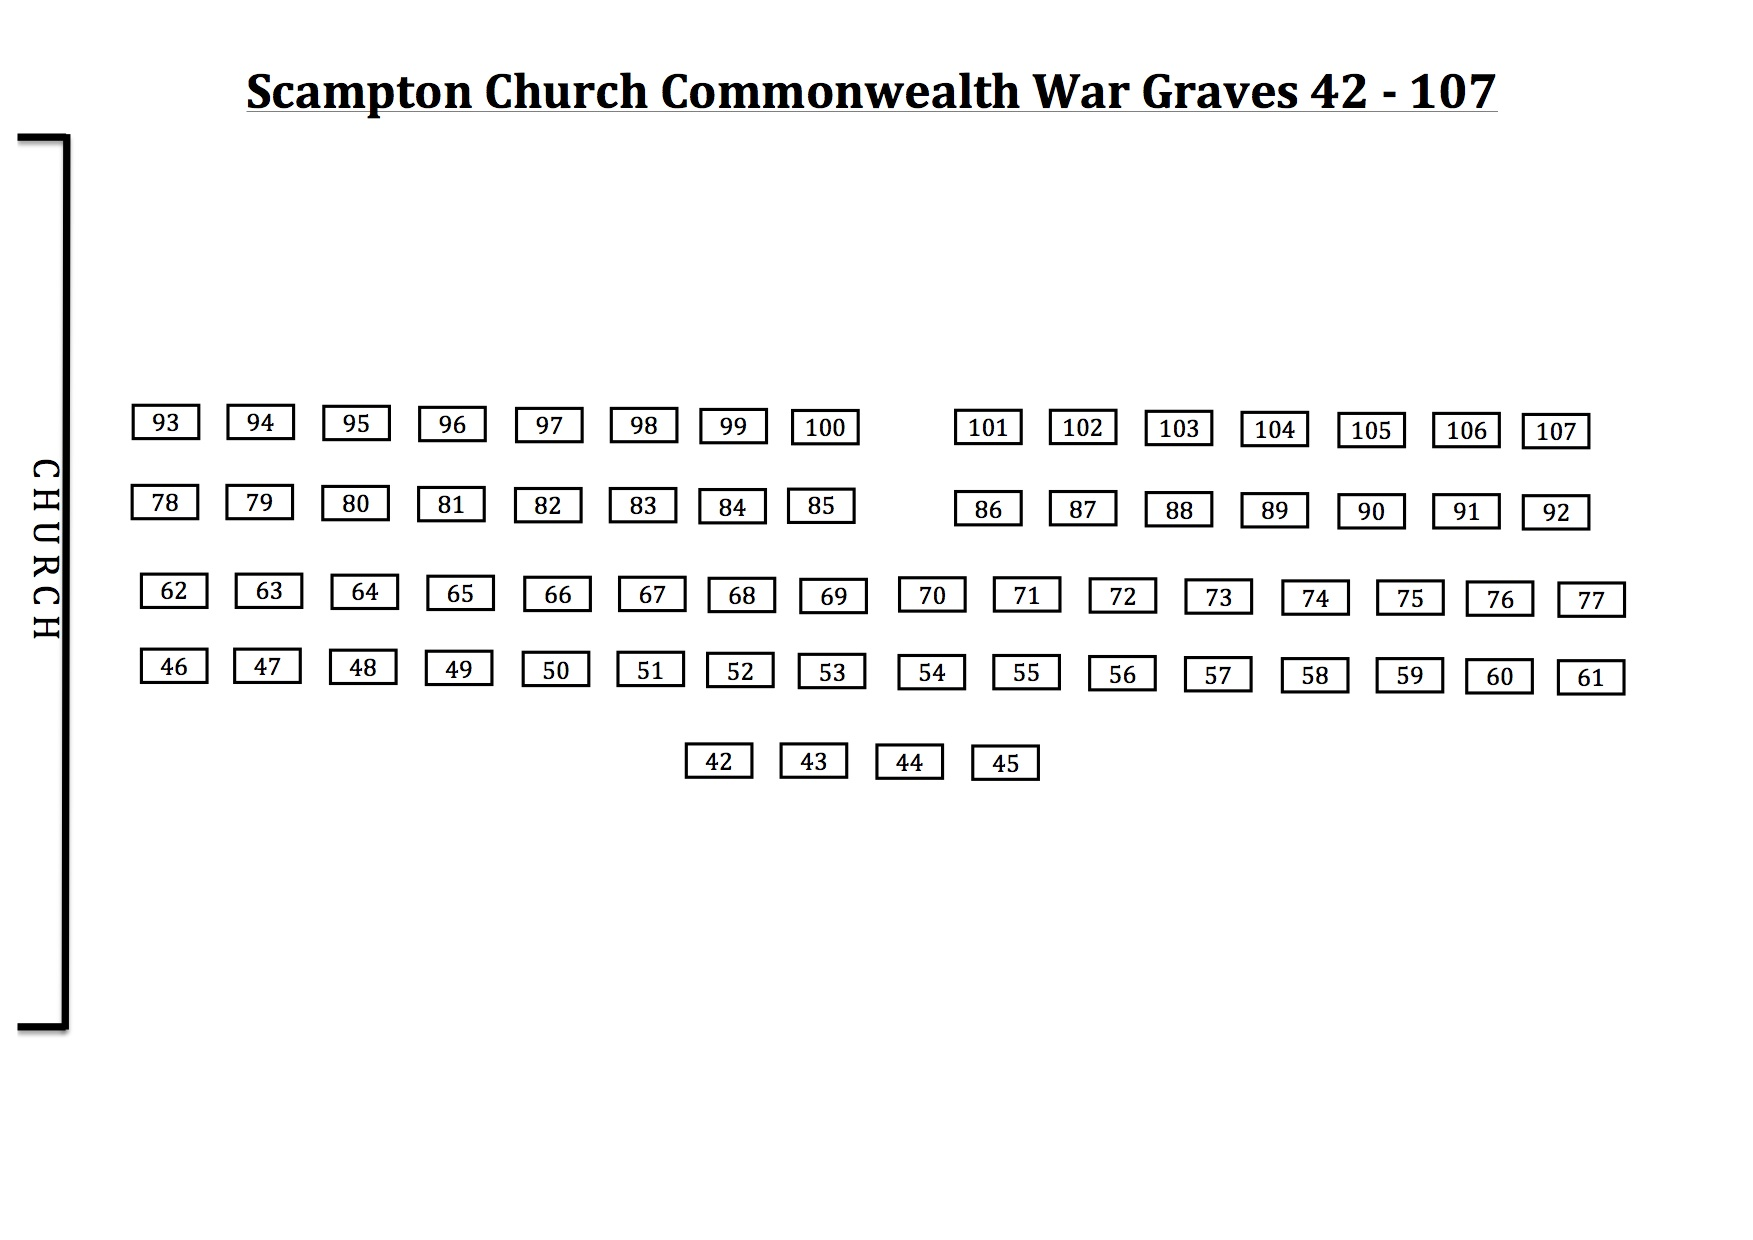 Scampton Church Commonwealth War Graves 42 - 107 PLAN WITHOUT NAMES